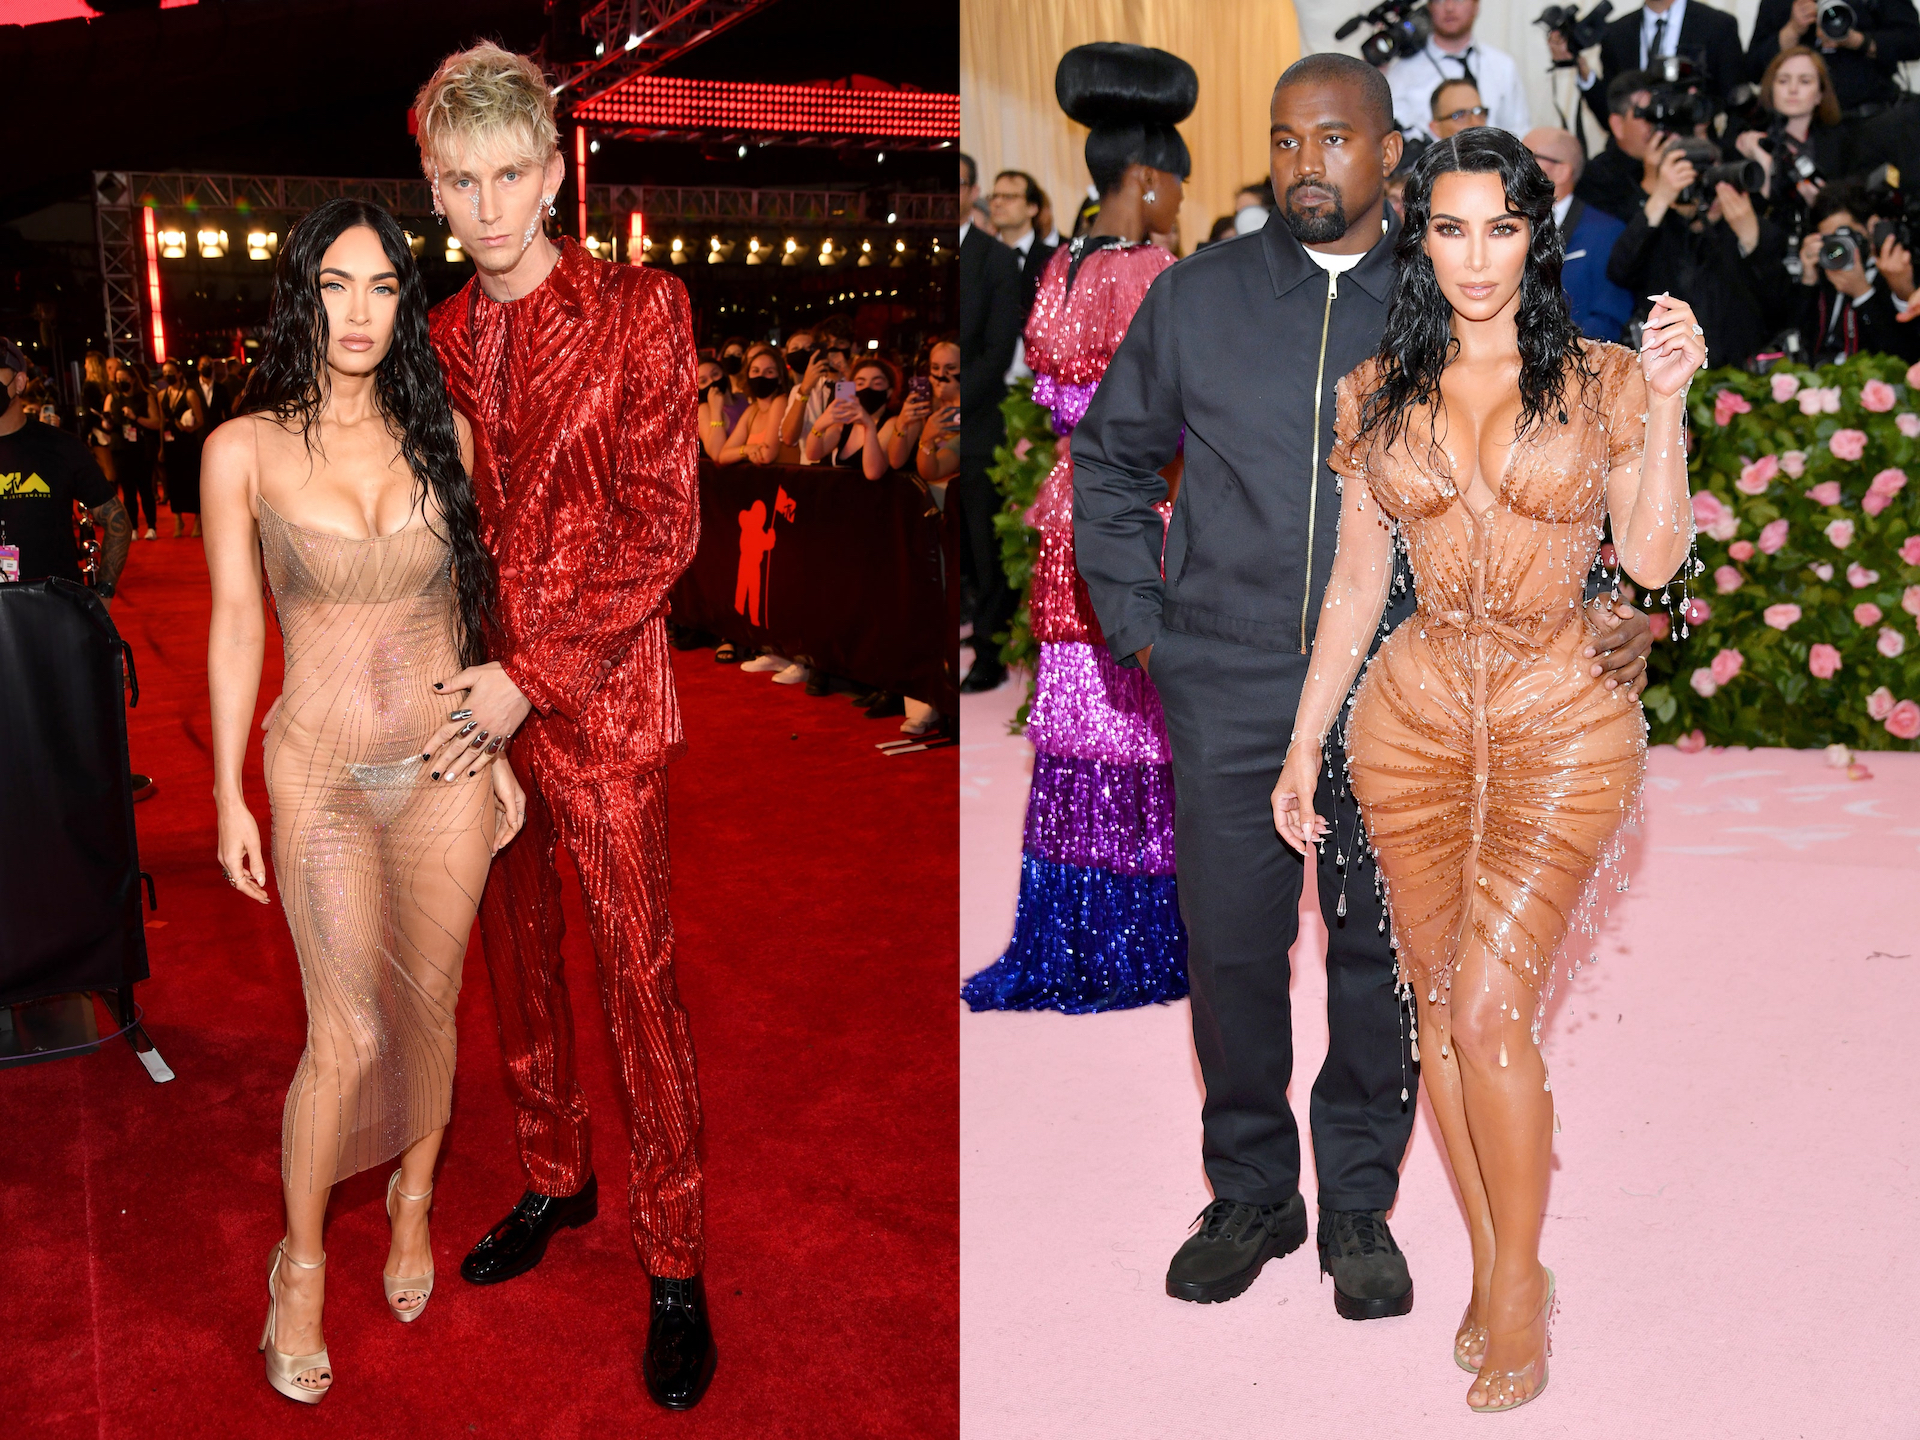 Megan Fox wore a barely-there Mugler crystal dress that looks similar to the one Kim Kardashian wore to the 2019 Met Gala. (Photo credit: Getty Images)